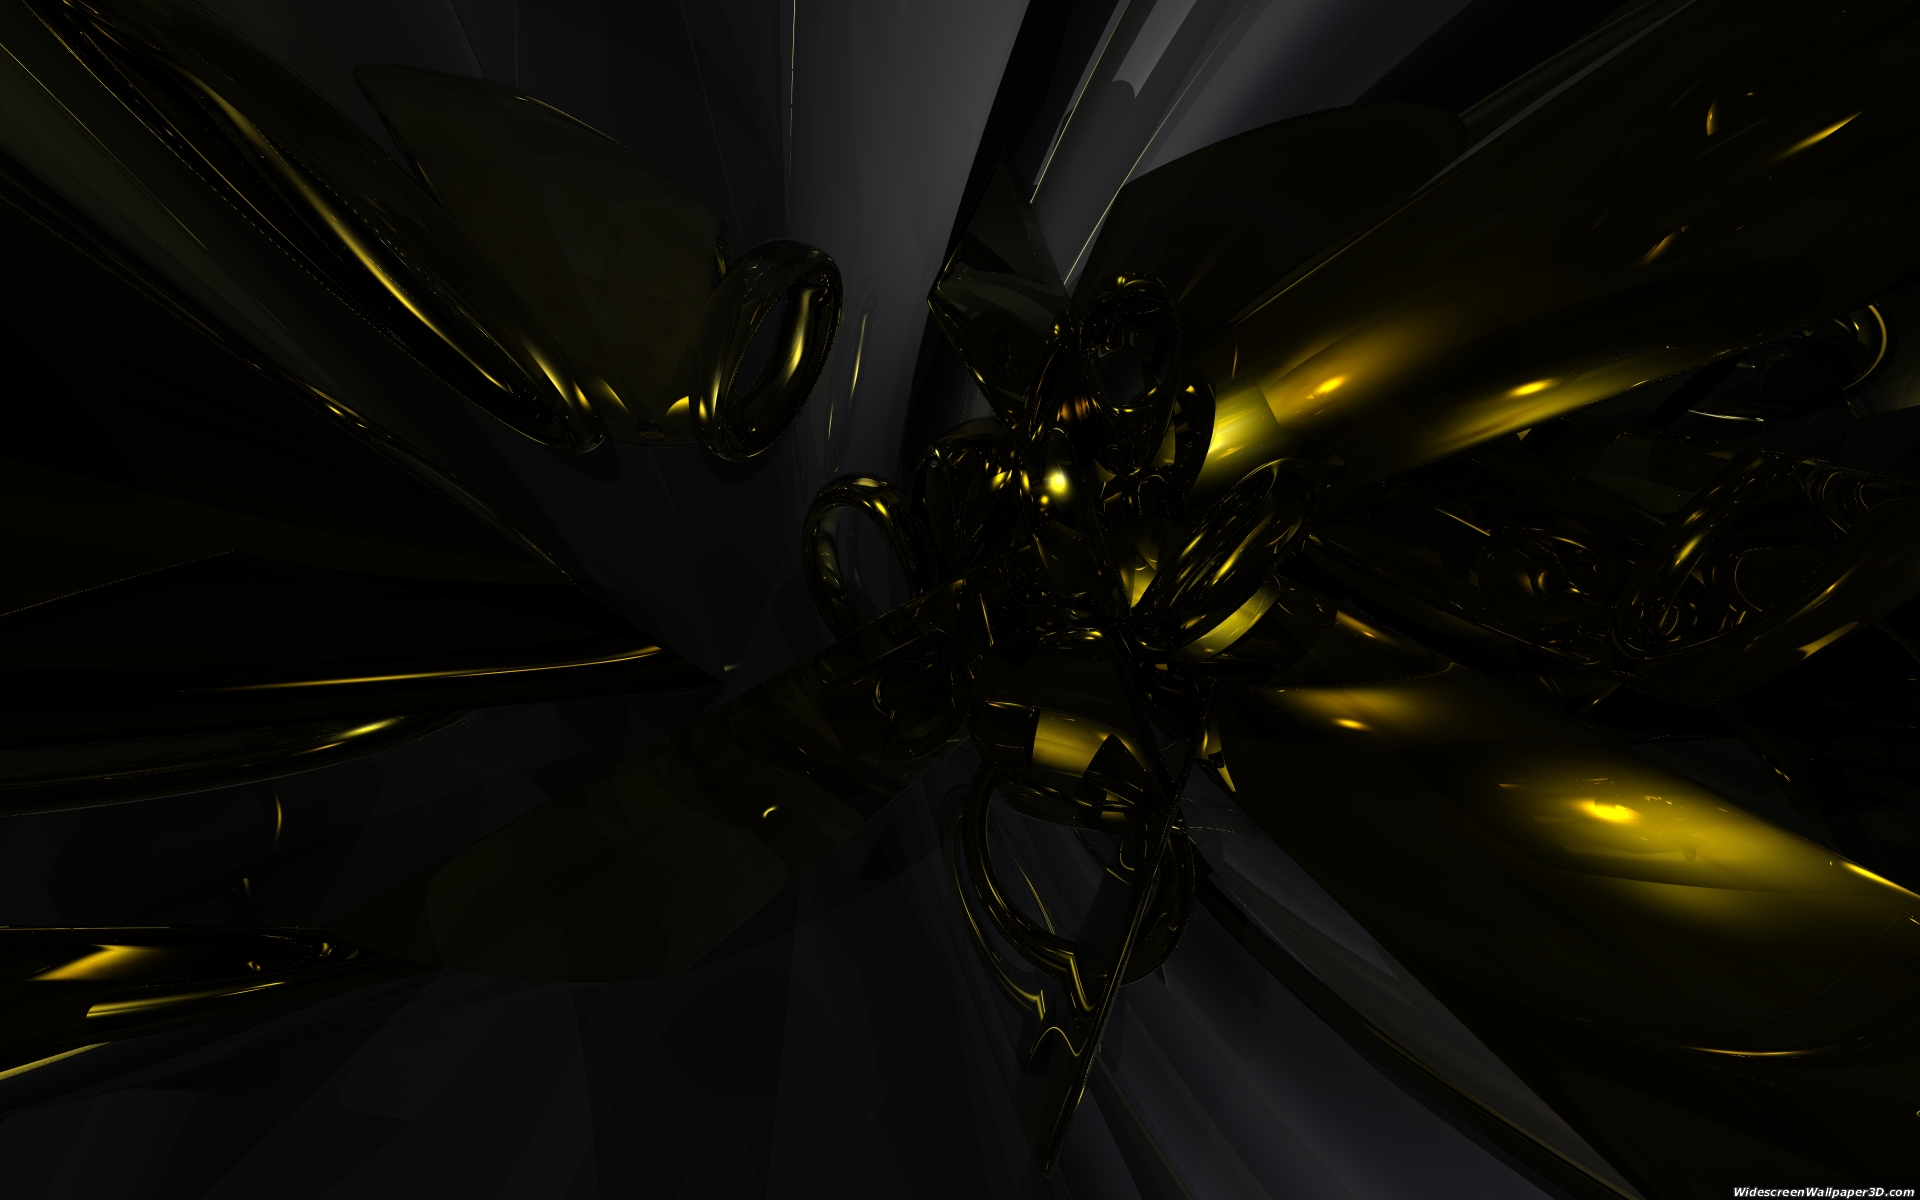 black and gold abstract wallpaper 13 high resolution